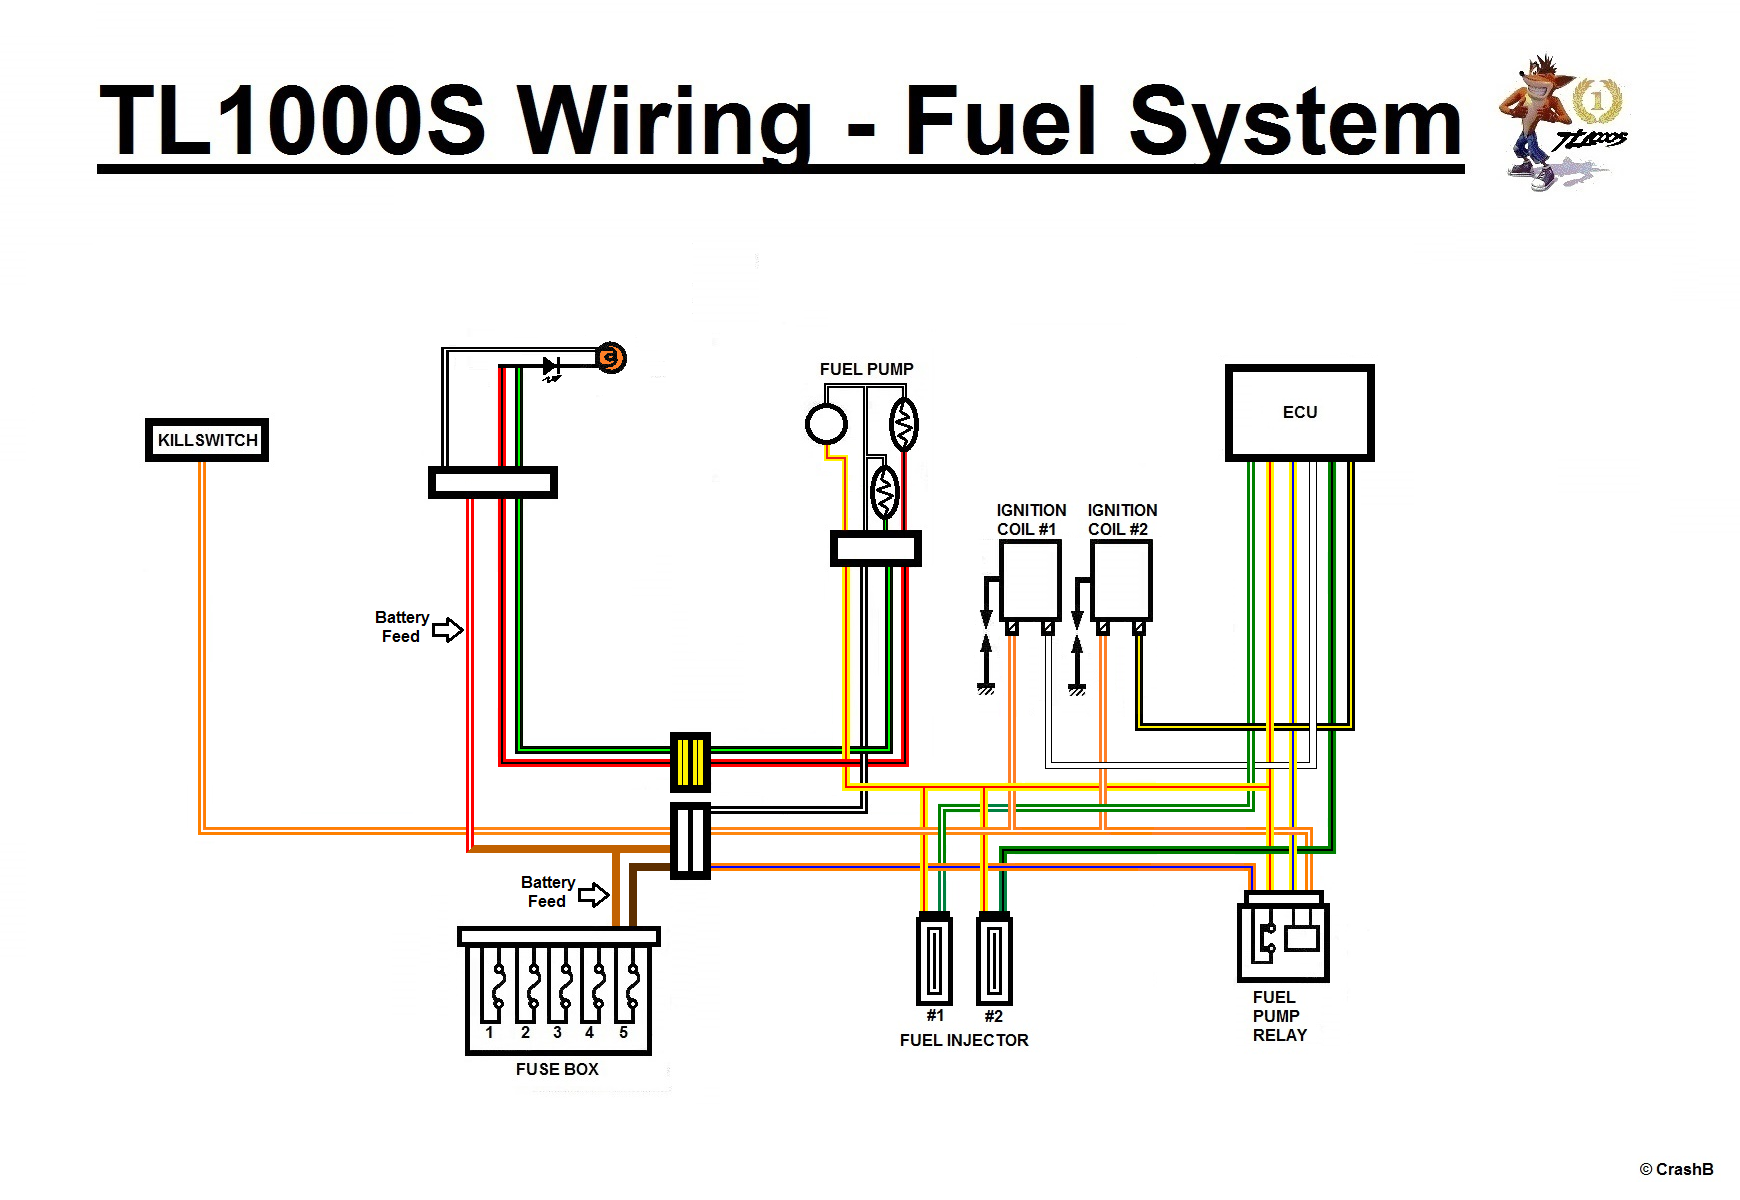 Mxz 800 Wiring Diagram Sea Doo Cdi Box 2002 Ski Solutions Rh Rausco Com Rev 2001